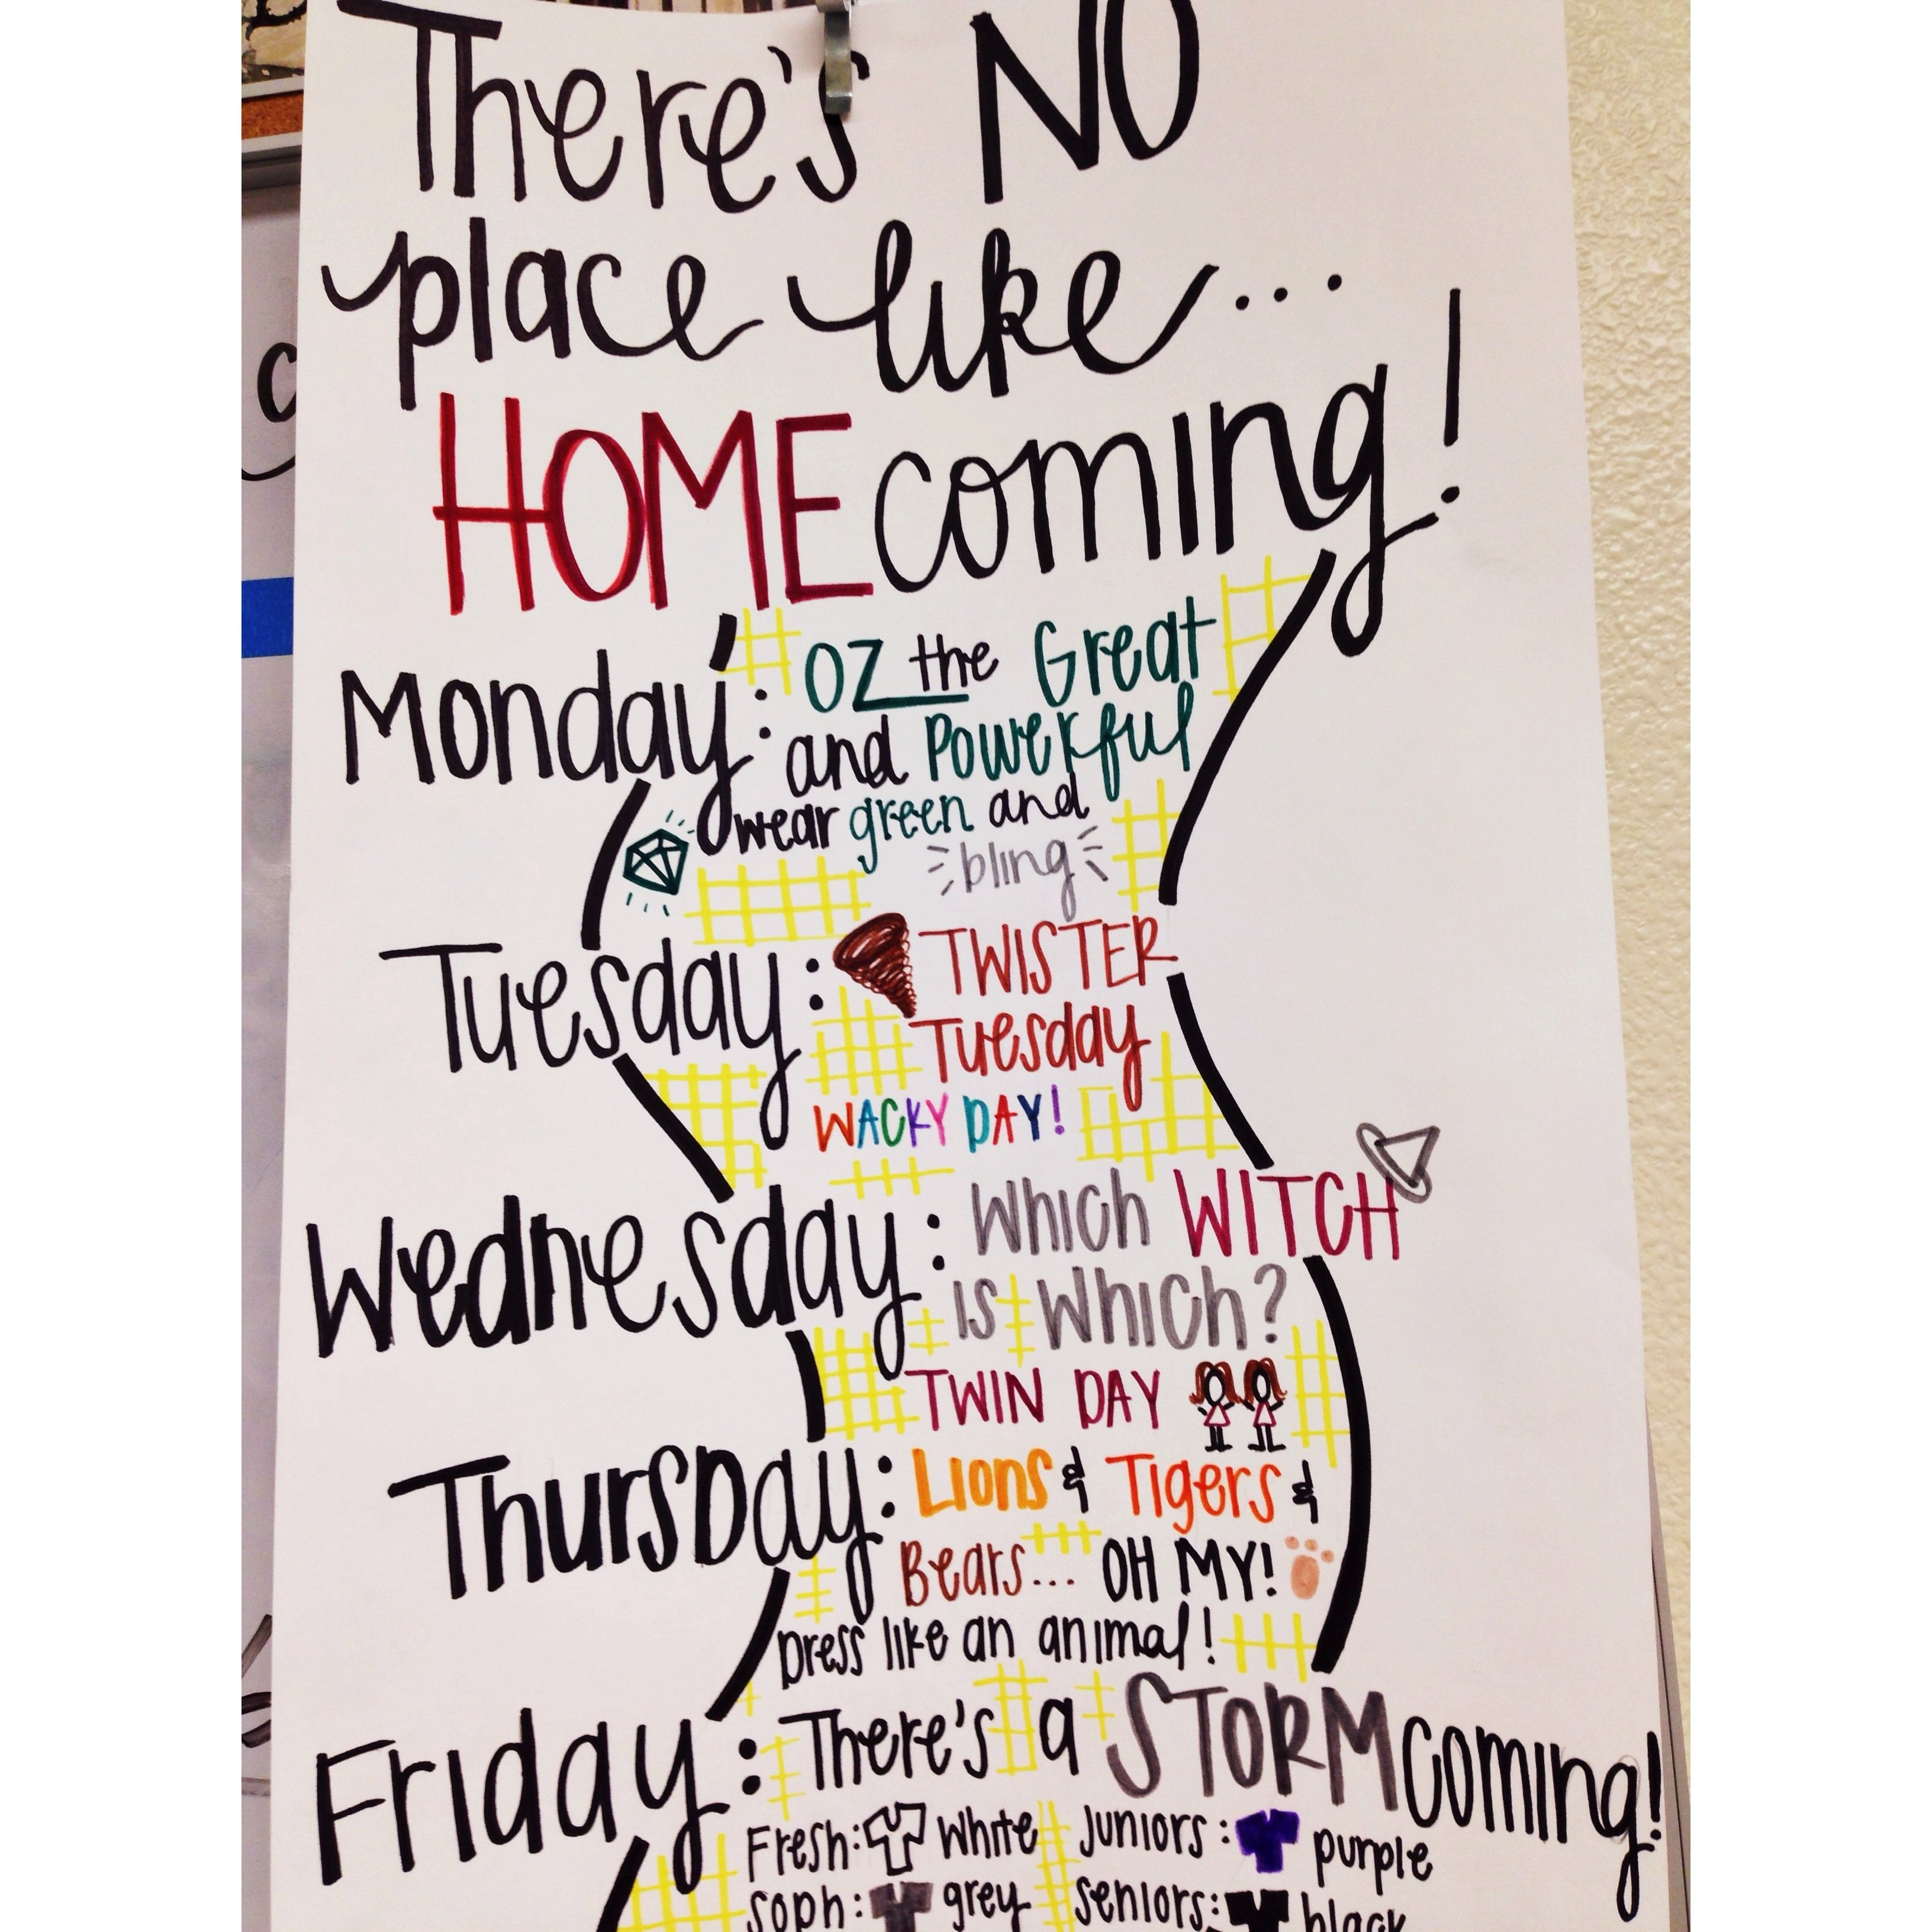 10 Perfect Homecoming Week Dress Up Ideas wizard of oz homecoming theme idea student council pinterest 1 2021